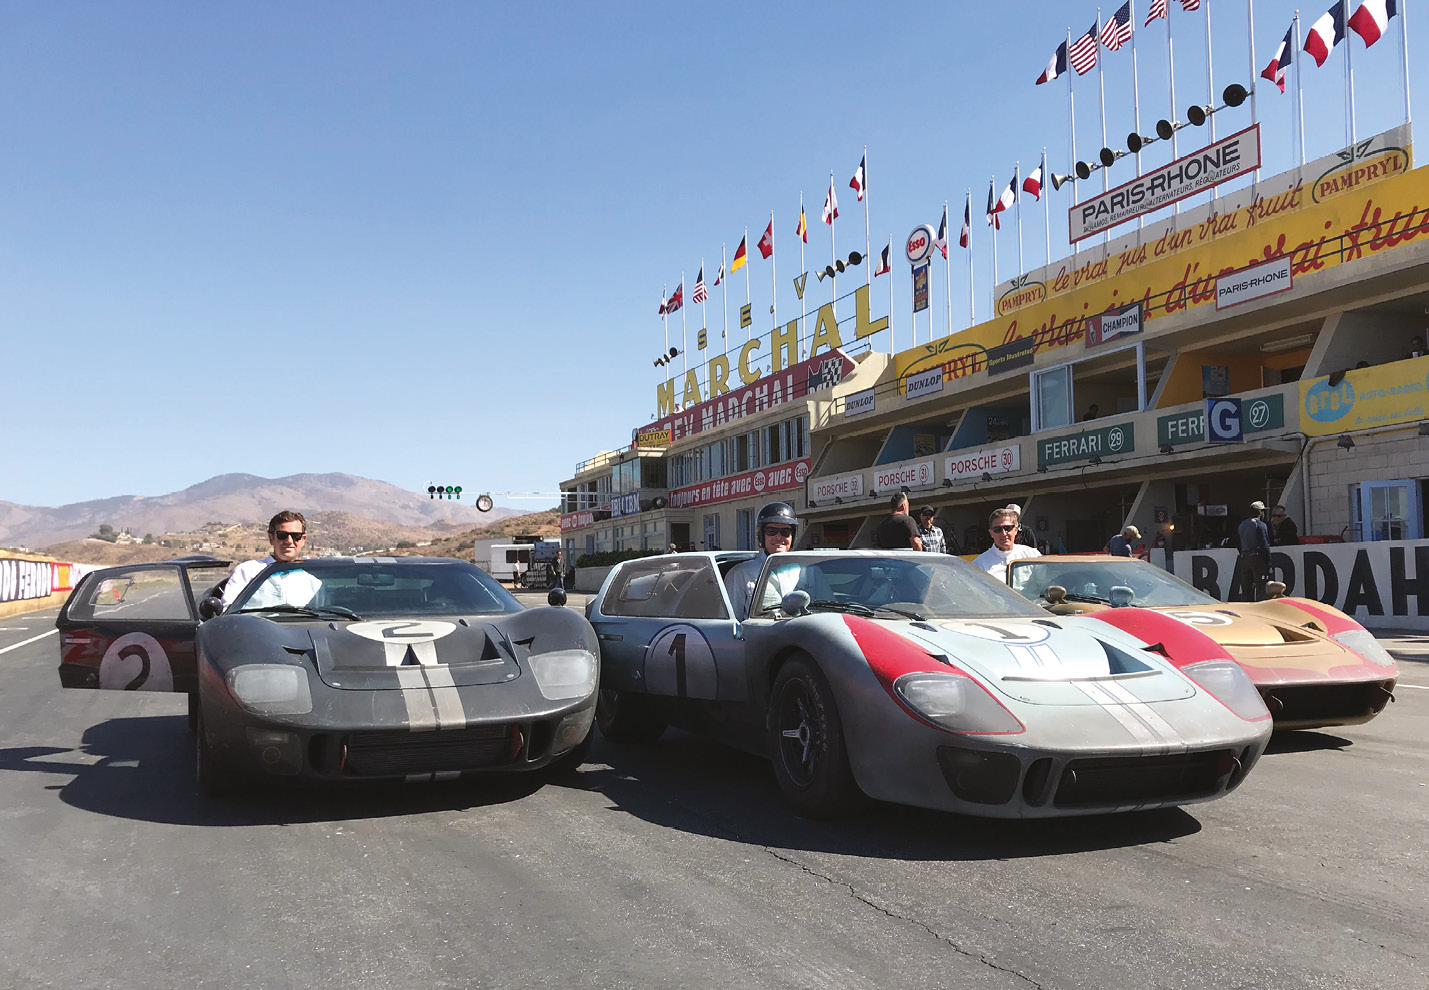 Detailed full-scale Le Mans pits built in California, with lookalike 'hero' cars